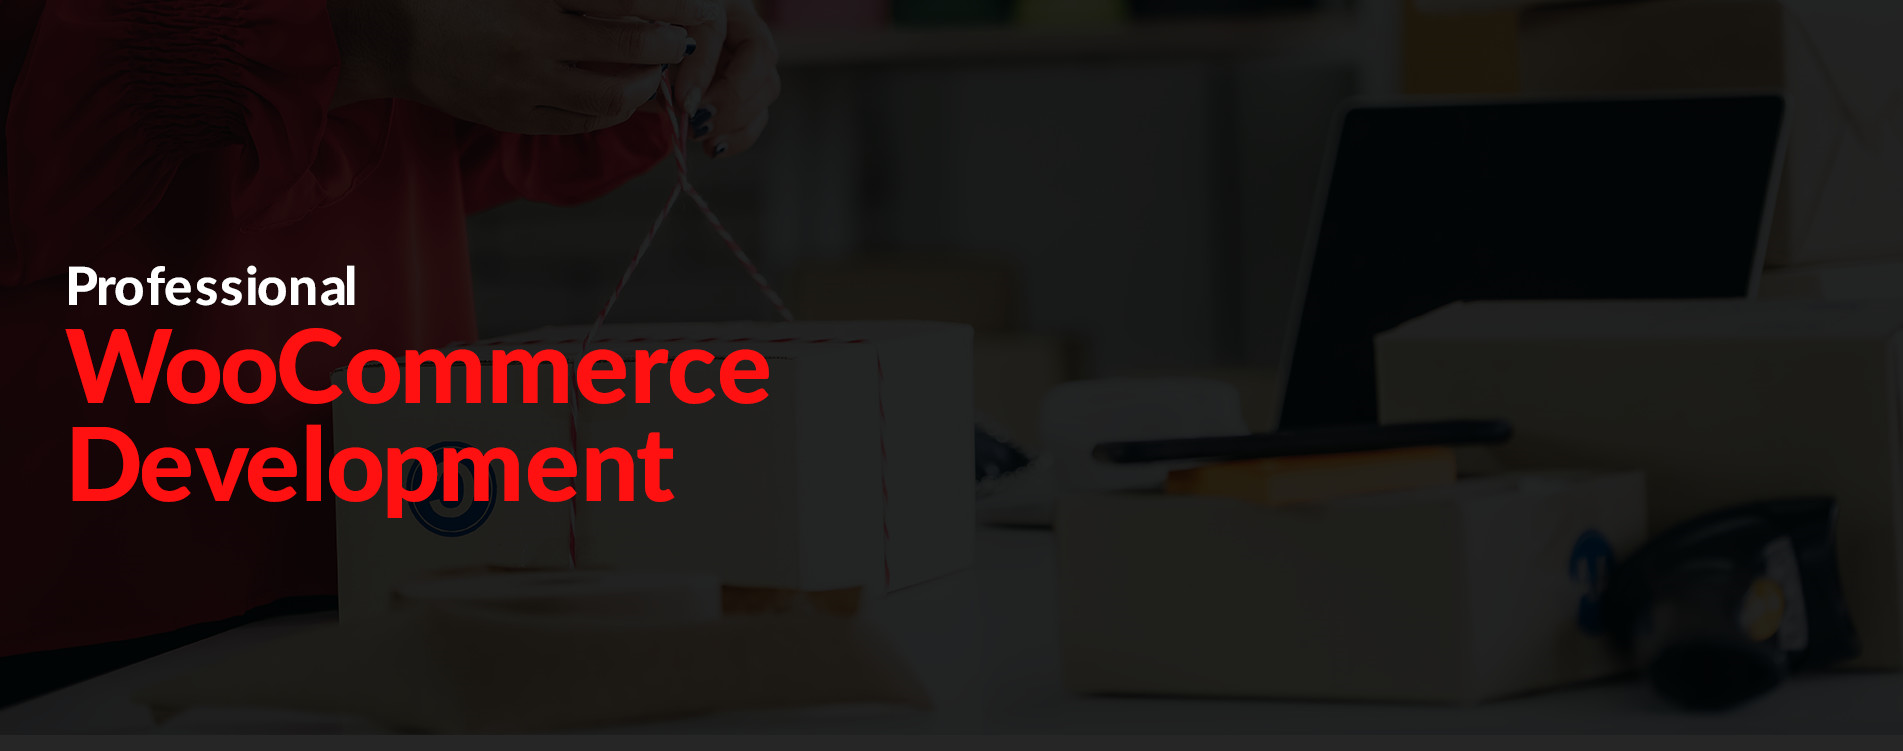 woocommerce service provider companies chicago